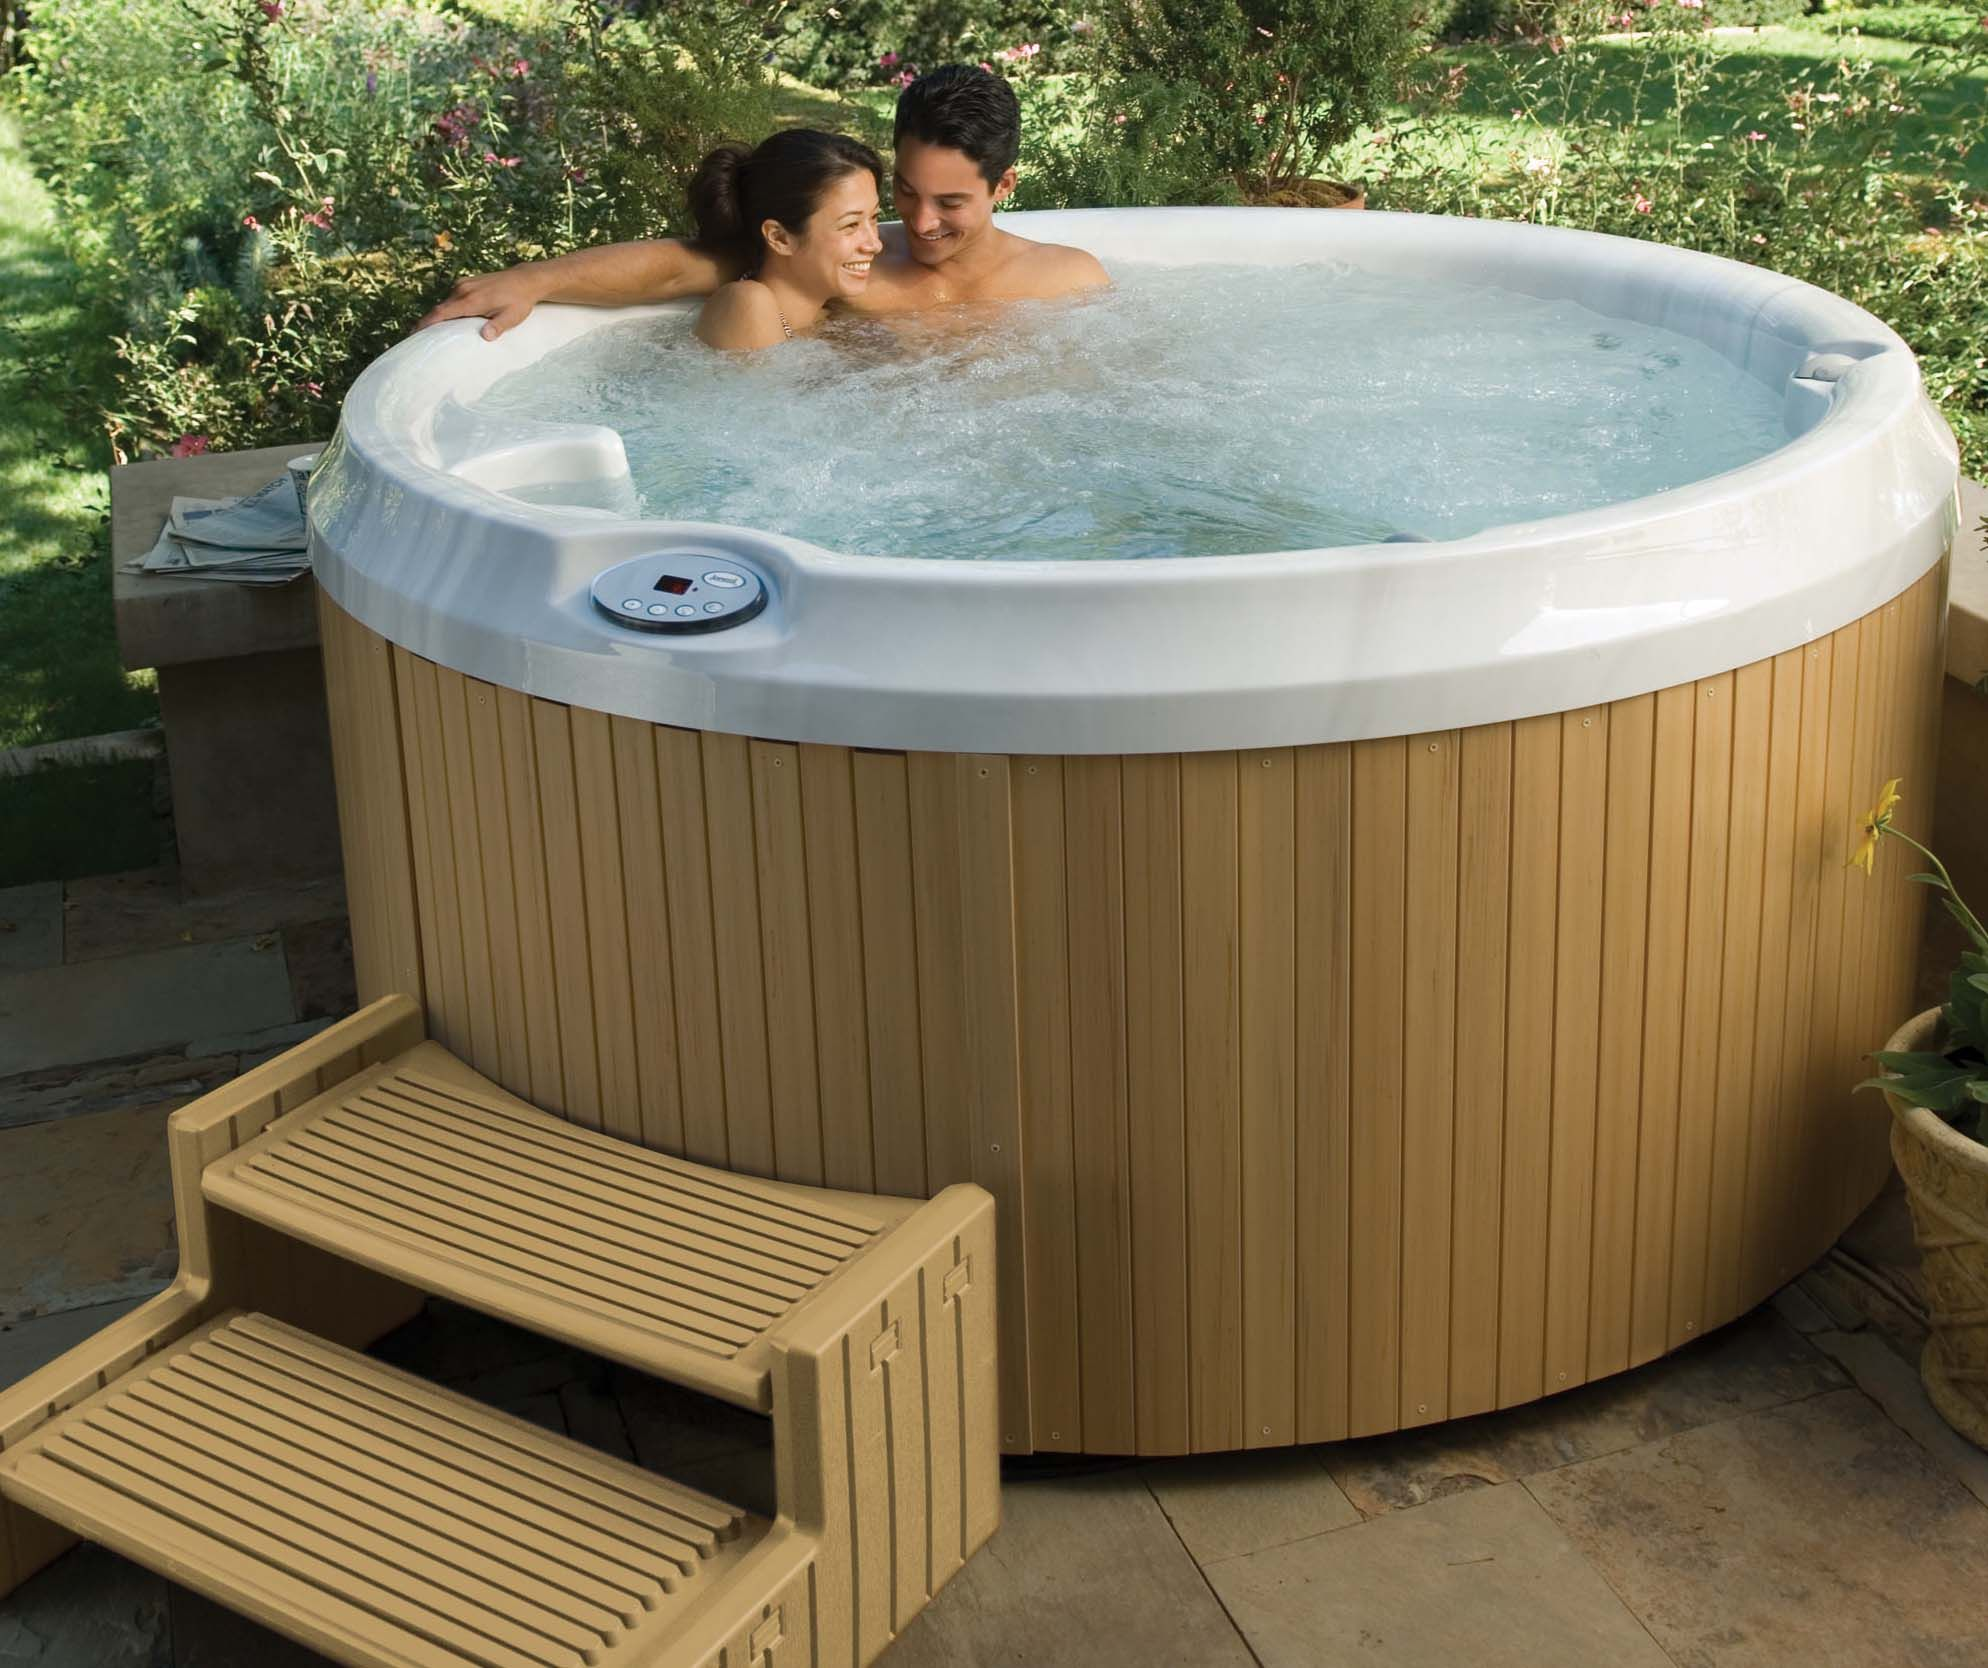 Jacuzzi J210 With Images Jacuzzi Hot Tub Jacuzzi Hot Tub